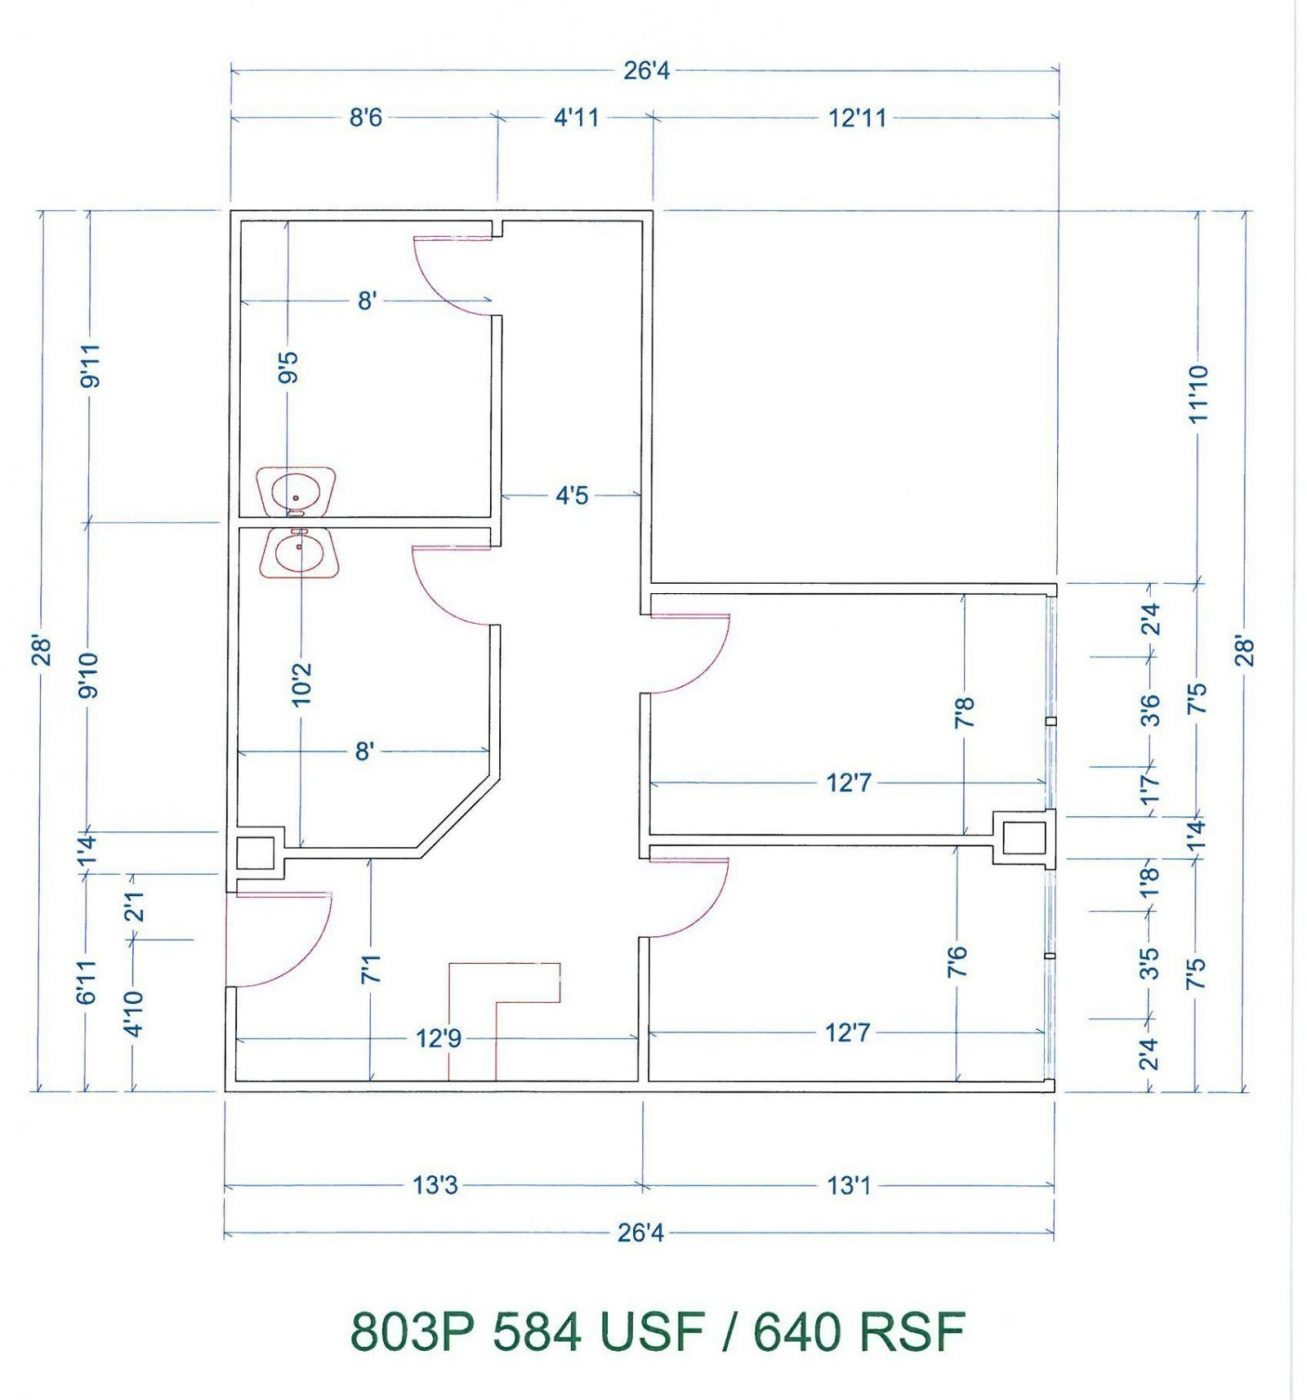 Floor Plan for unit 803P at 20755 Greenfield Rd - 8th Floor Southfield, MI 48075